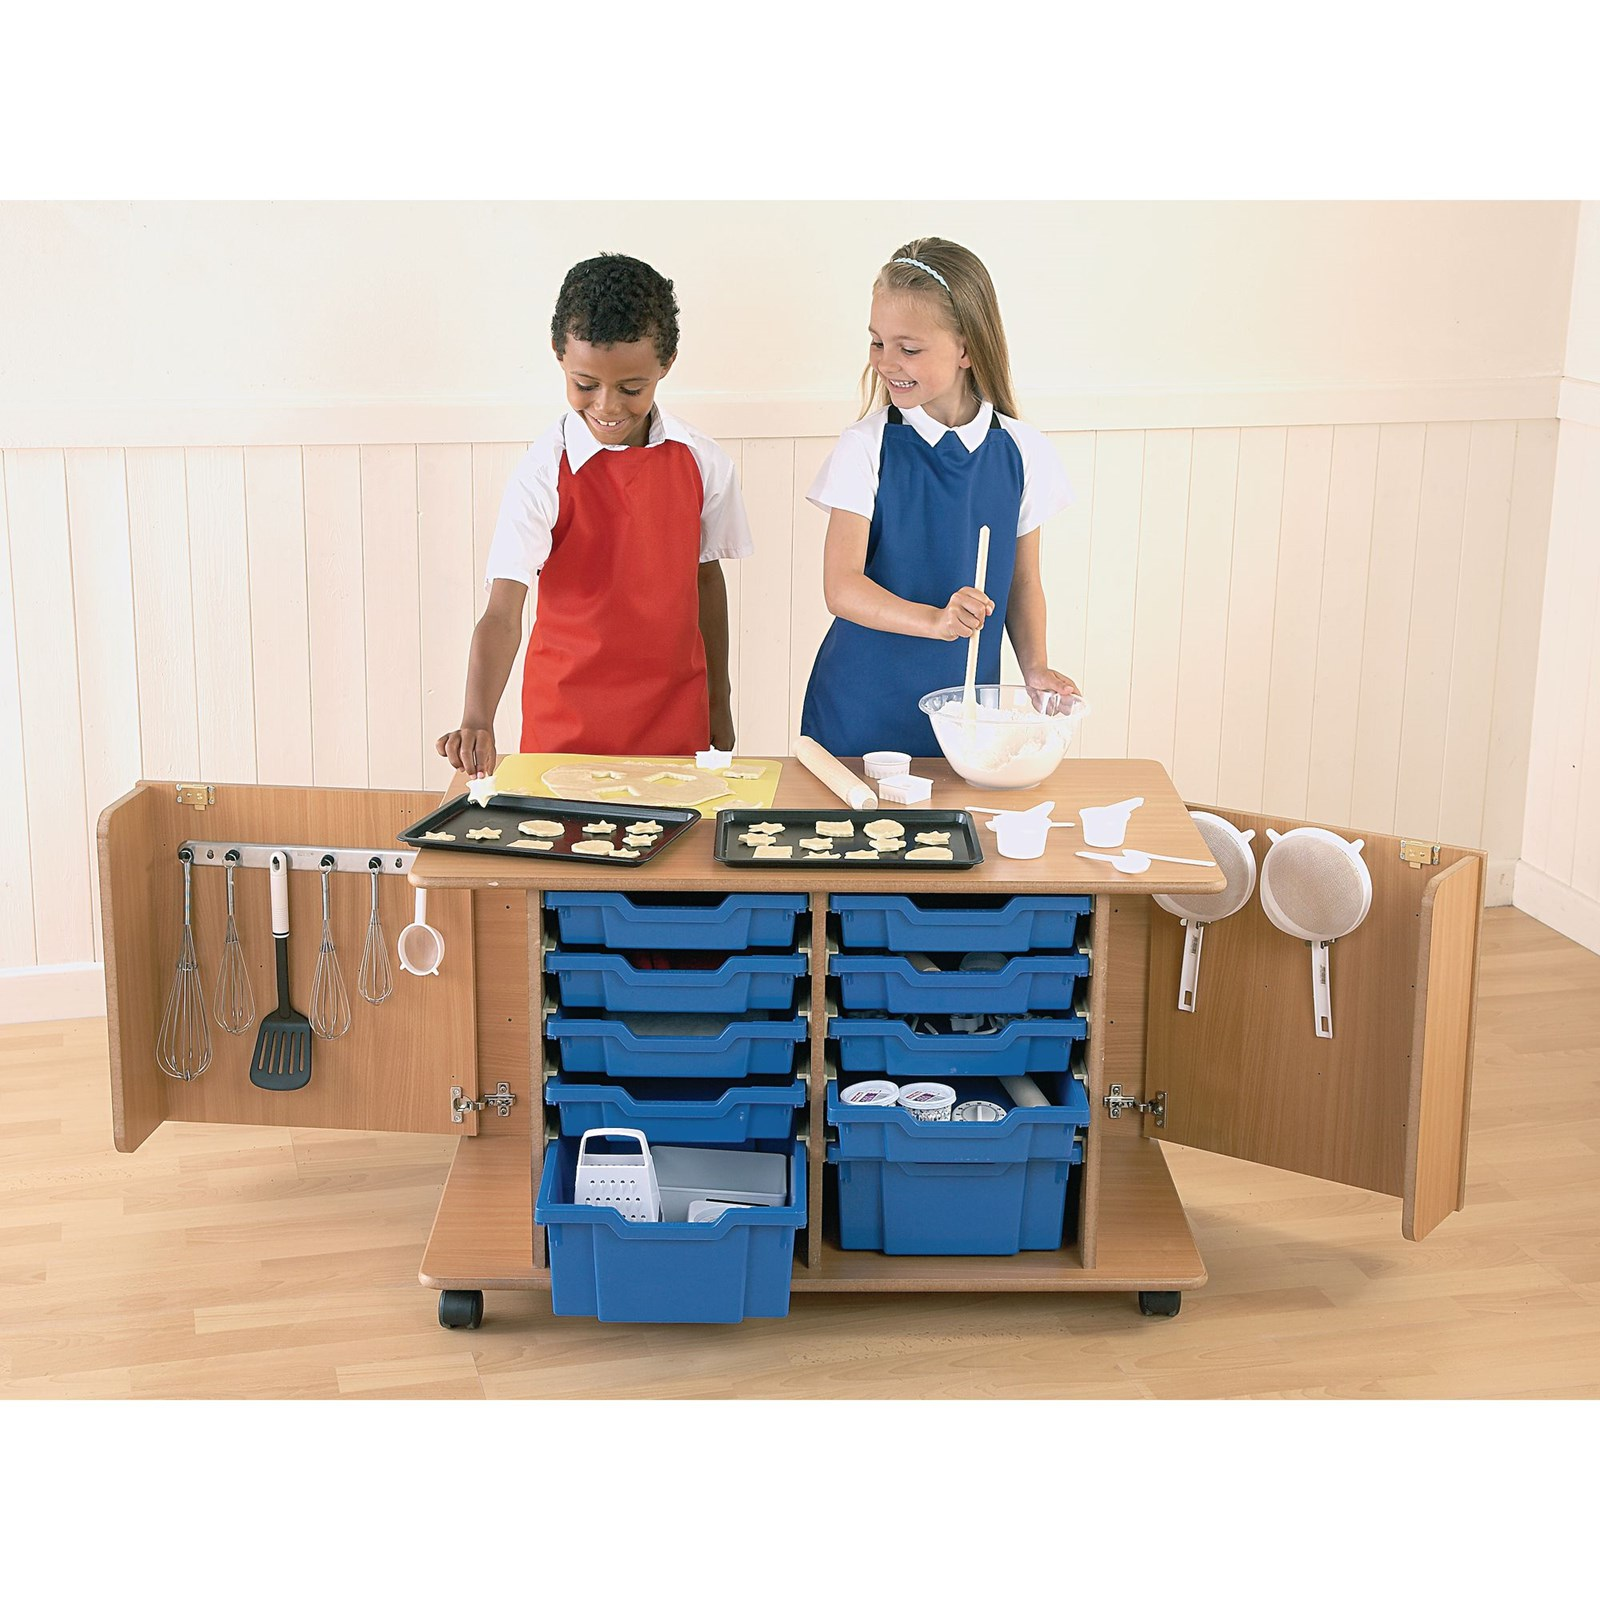 Infant Food Worktruck  - Without resources